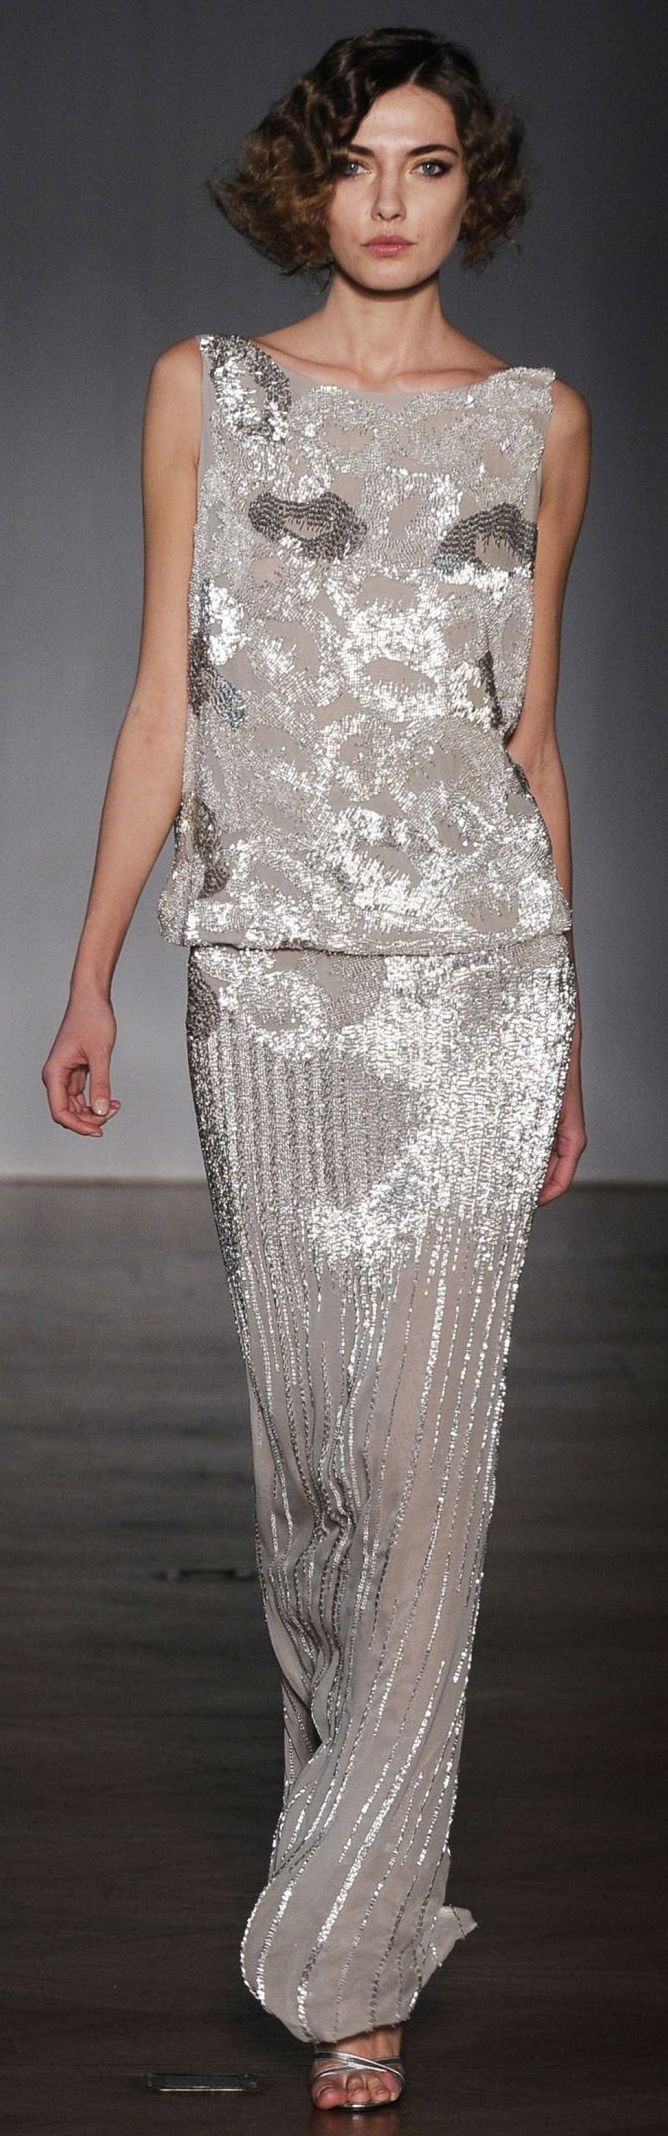 Dilek Hanif ~ Shimmering Evening Gown, Silver